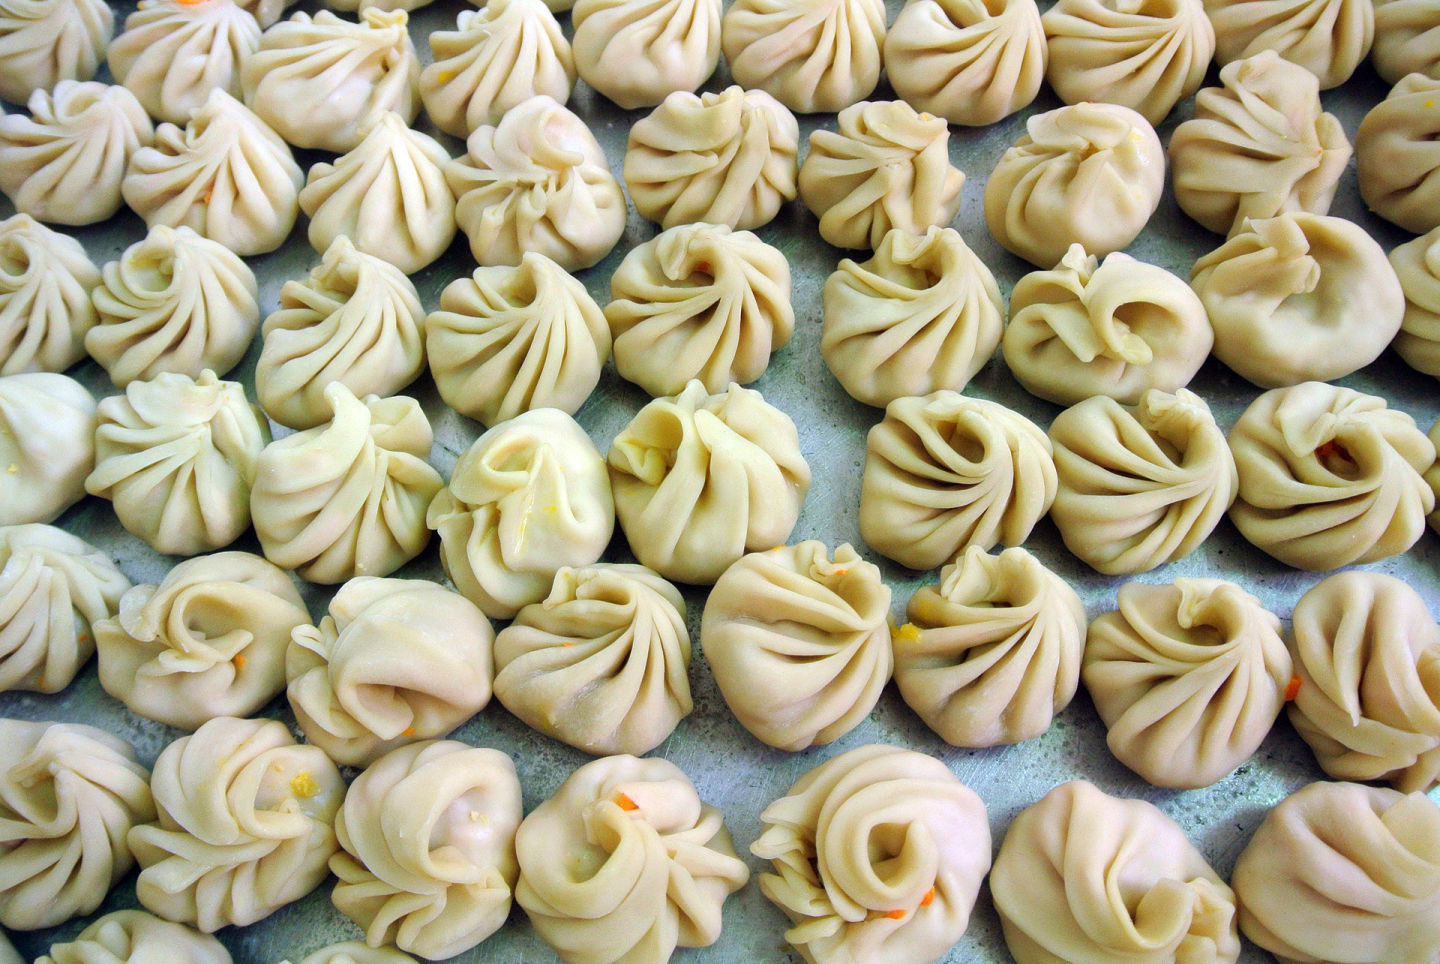 Momos ready for steaming at Bini's Kitchen Renée Alexander